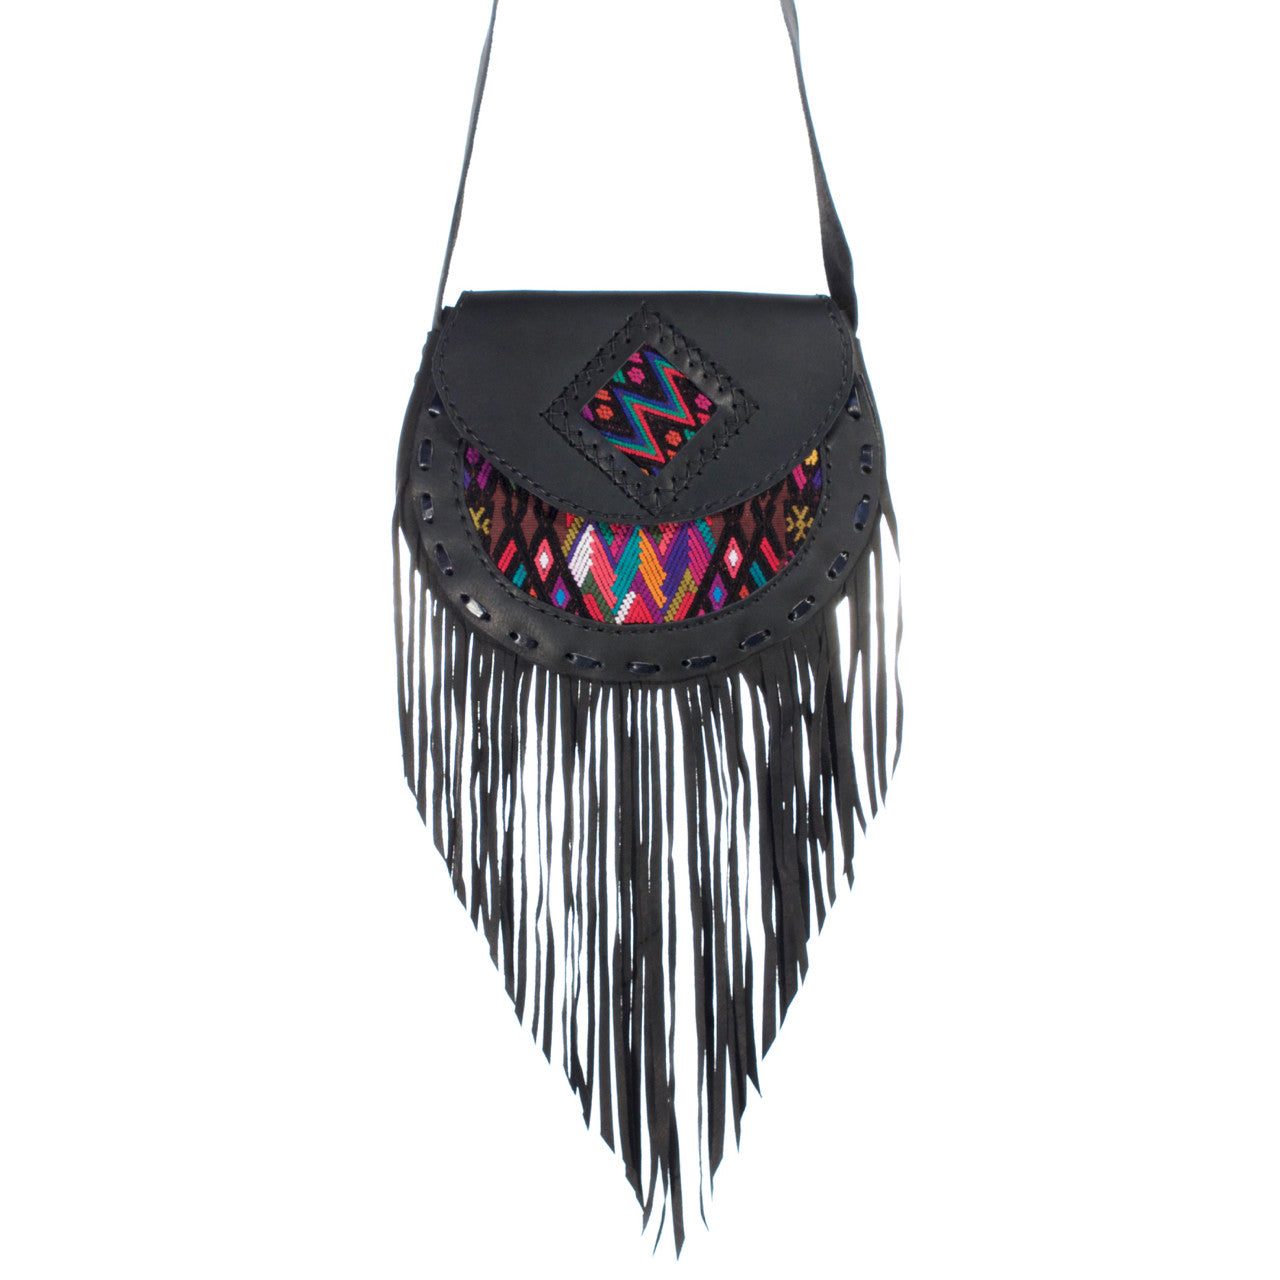 Solola Fringe Bag - Black  Shoulder Bag Multi Zigzag - Cielo Collective handmade Mexico Guatemala